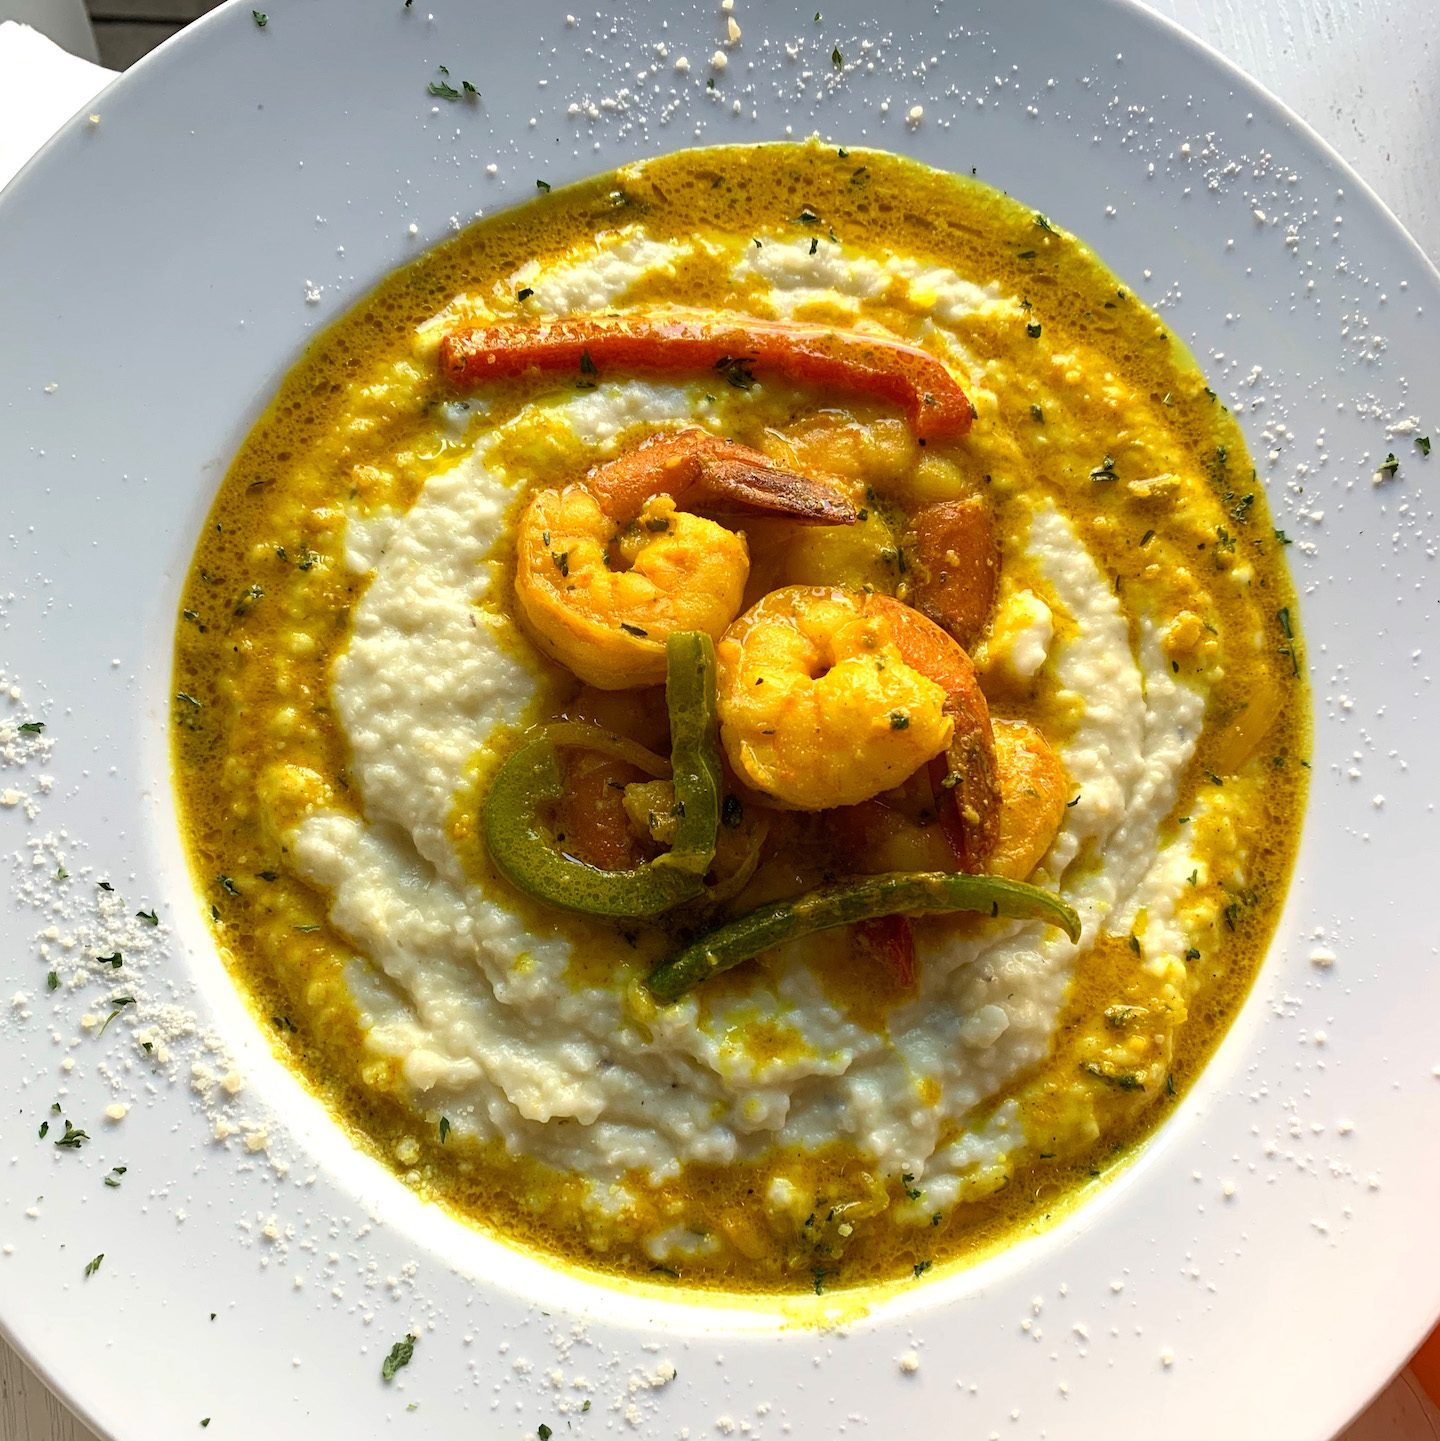 Suite 704 Brunch Curry Shrimp & Grits